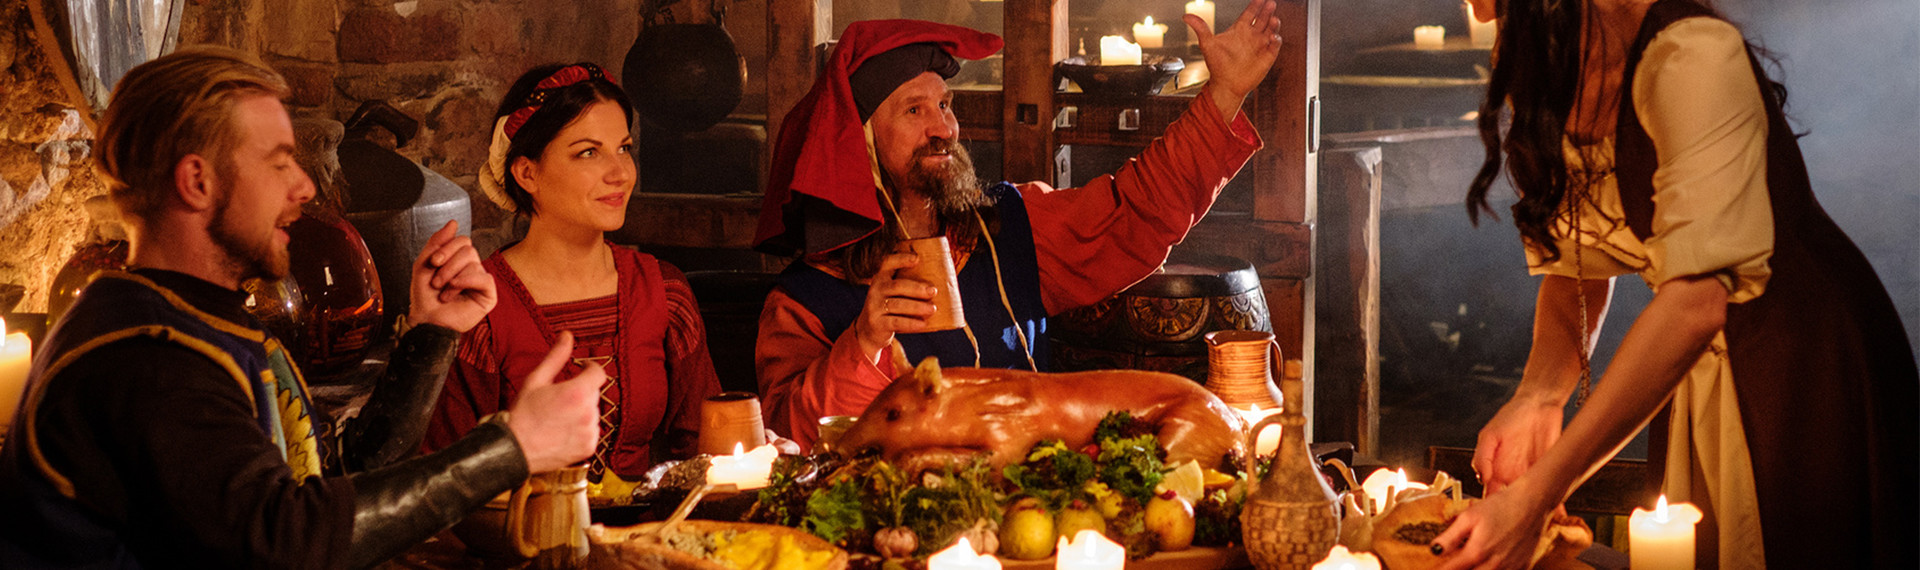 Medieval Dinner in Budapest | Pissup Tours